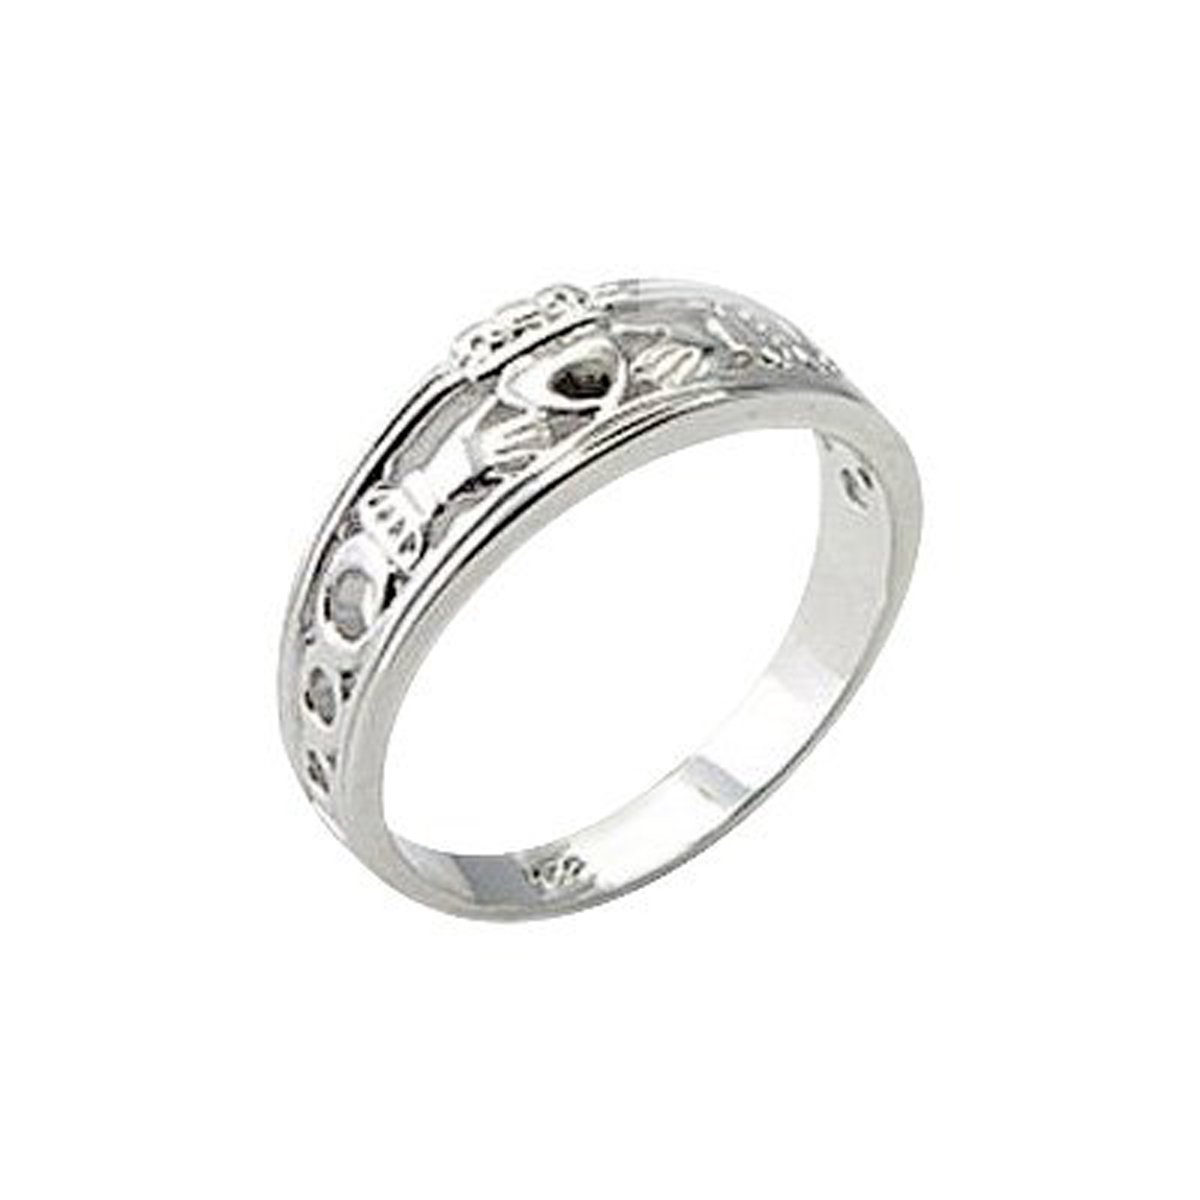 Bague, argent sterling, Claddagh irlandais (poids : 3,3g) HYPM Jewellery SSR-019